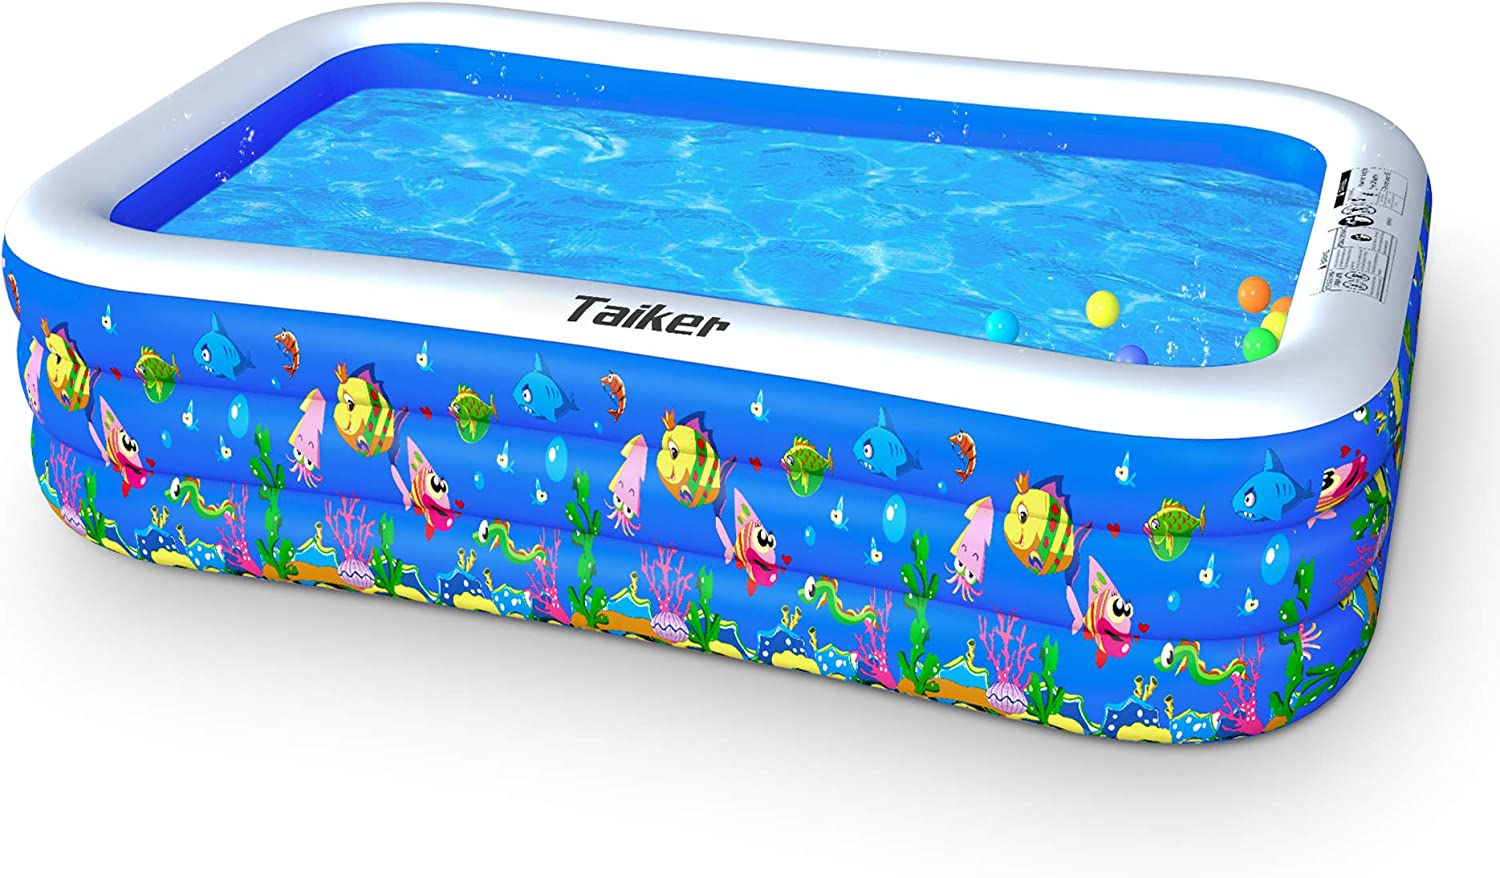 Taiker Inflatable Swimming Pools Kiddie Pools Family Lounge Pools 96 X 57 X 21 Family Swimming Pool For Kids Adults Babies Toddlers Outdoor Garden Backyard Medium Garden Outdoor